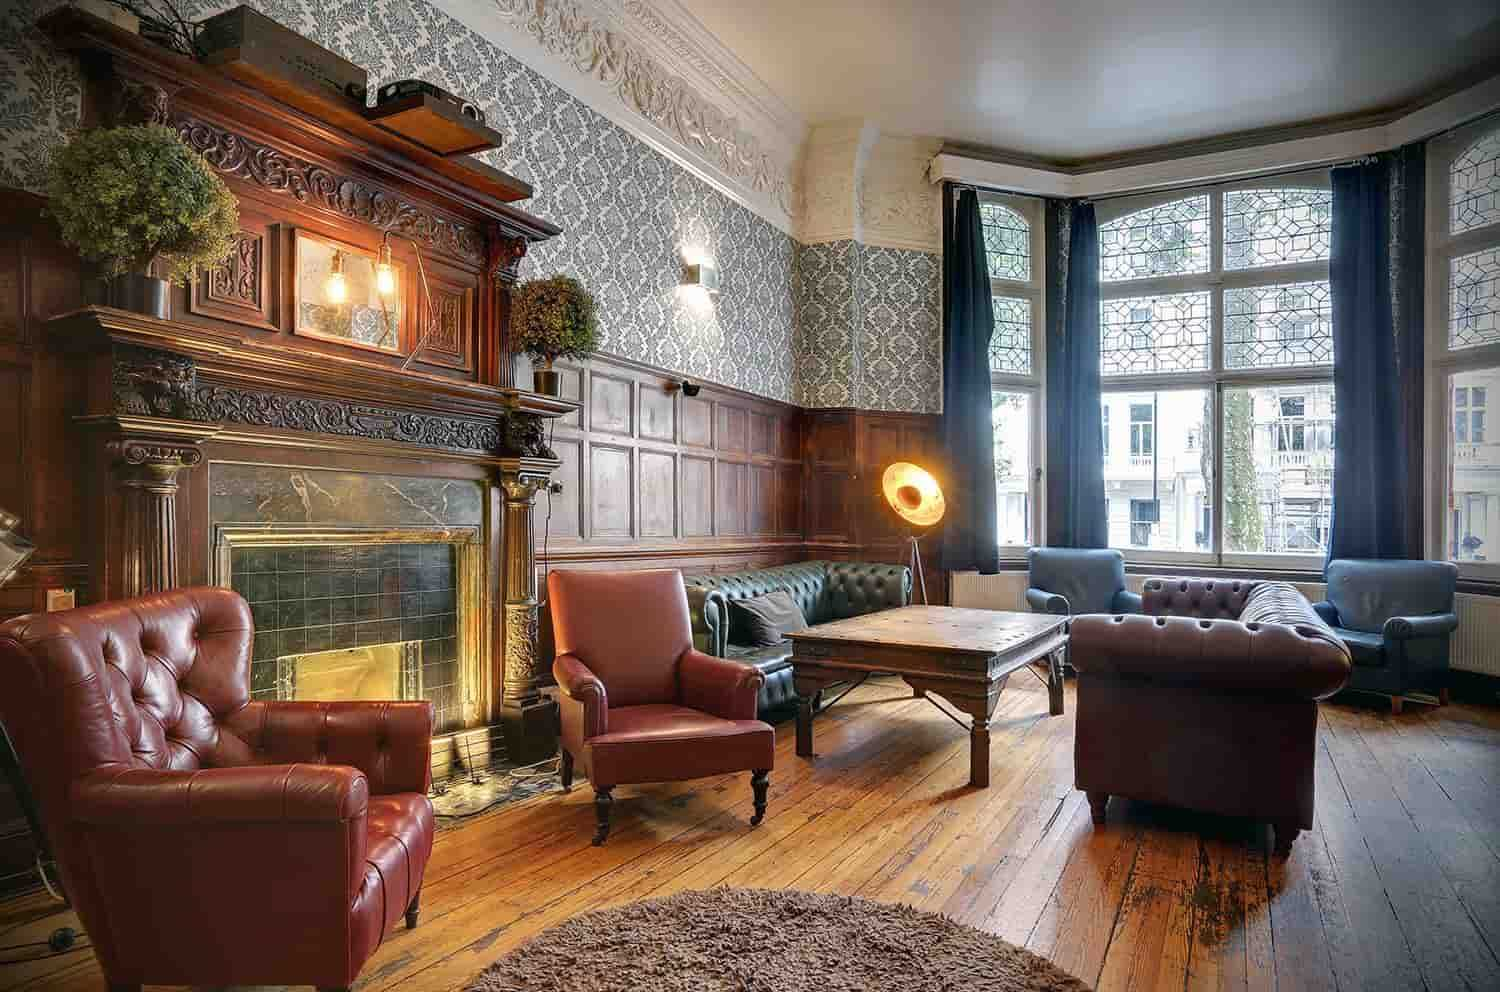 London Hostels 2021: The Perfect Budget Lodging Solution Guide!